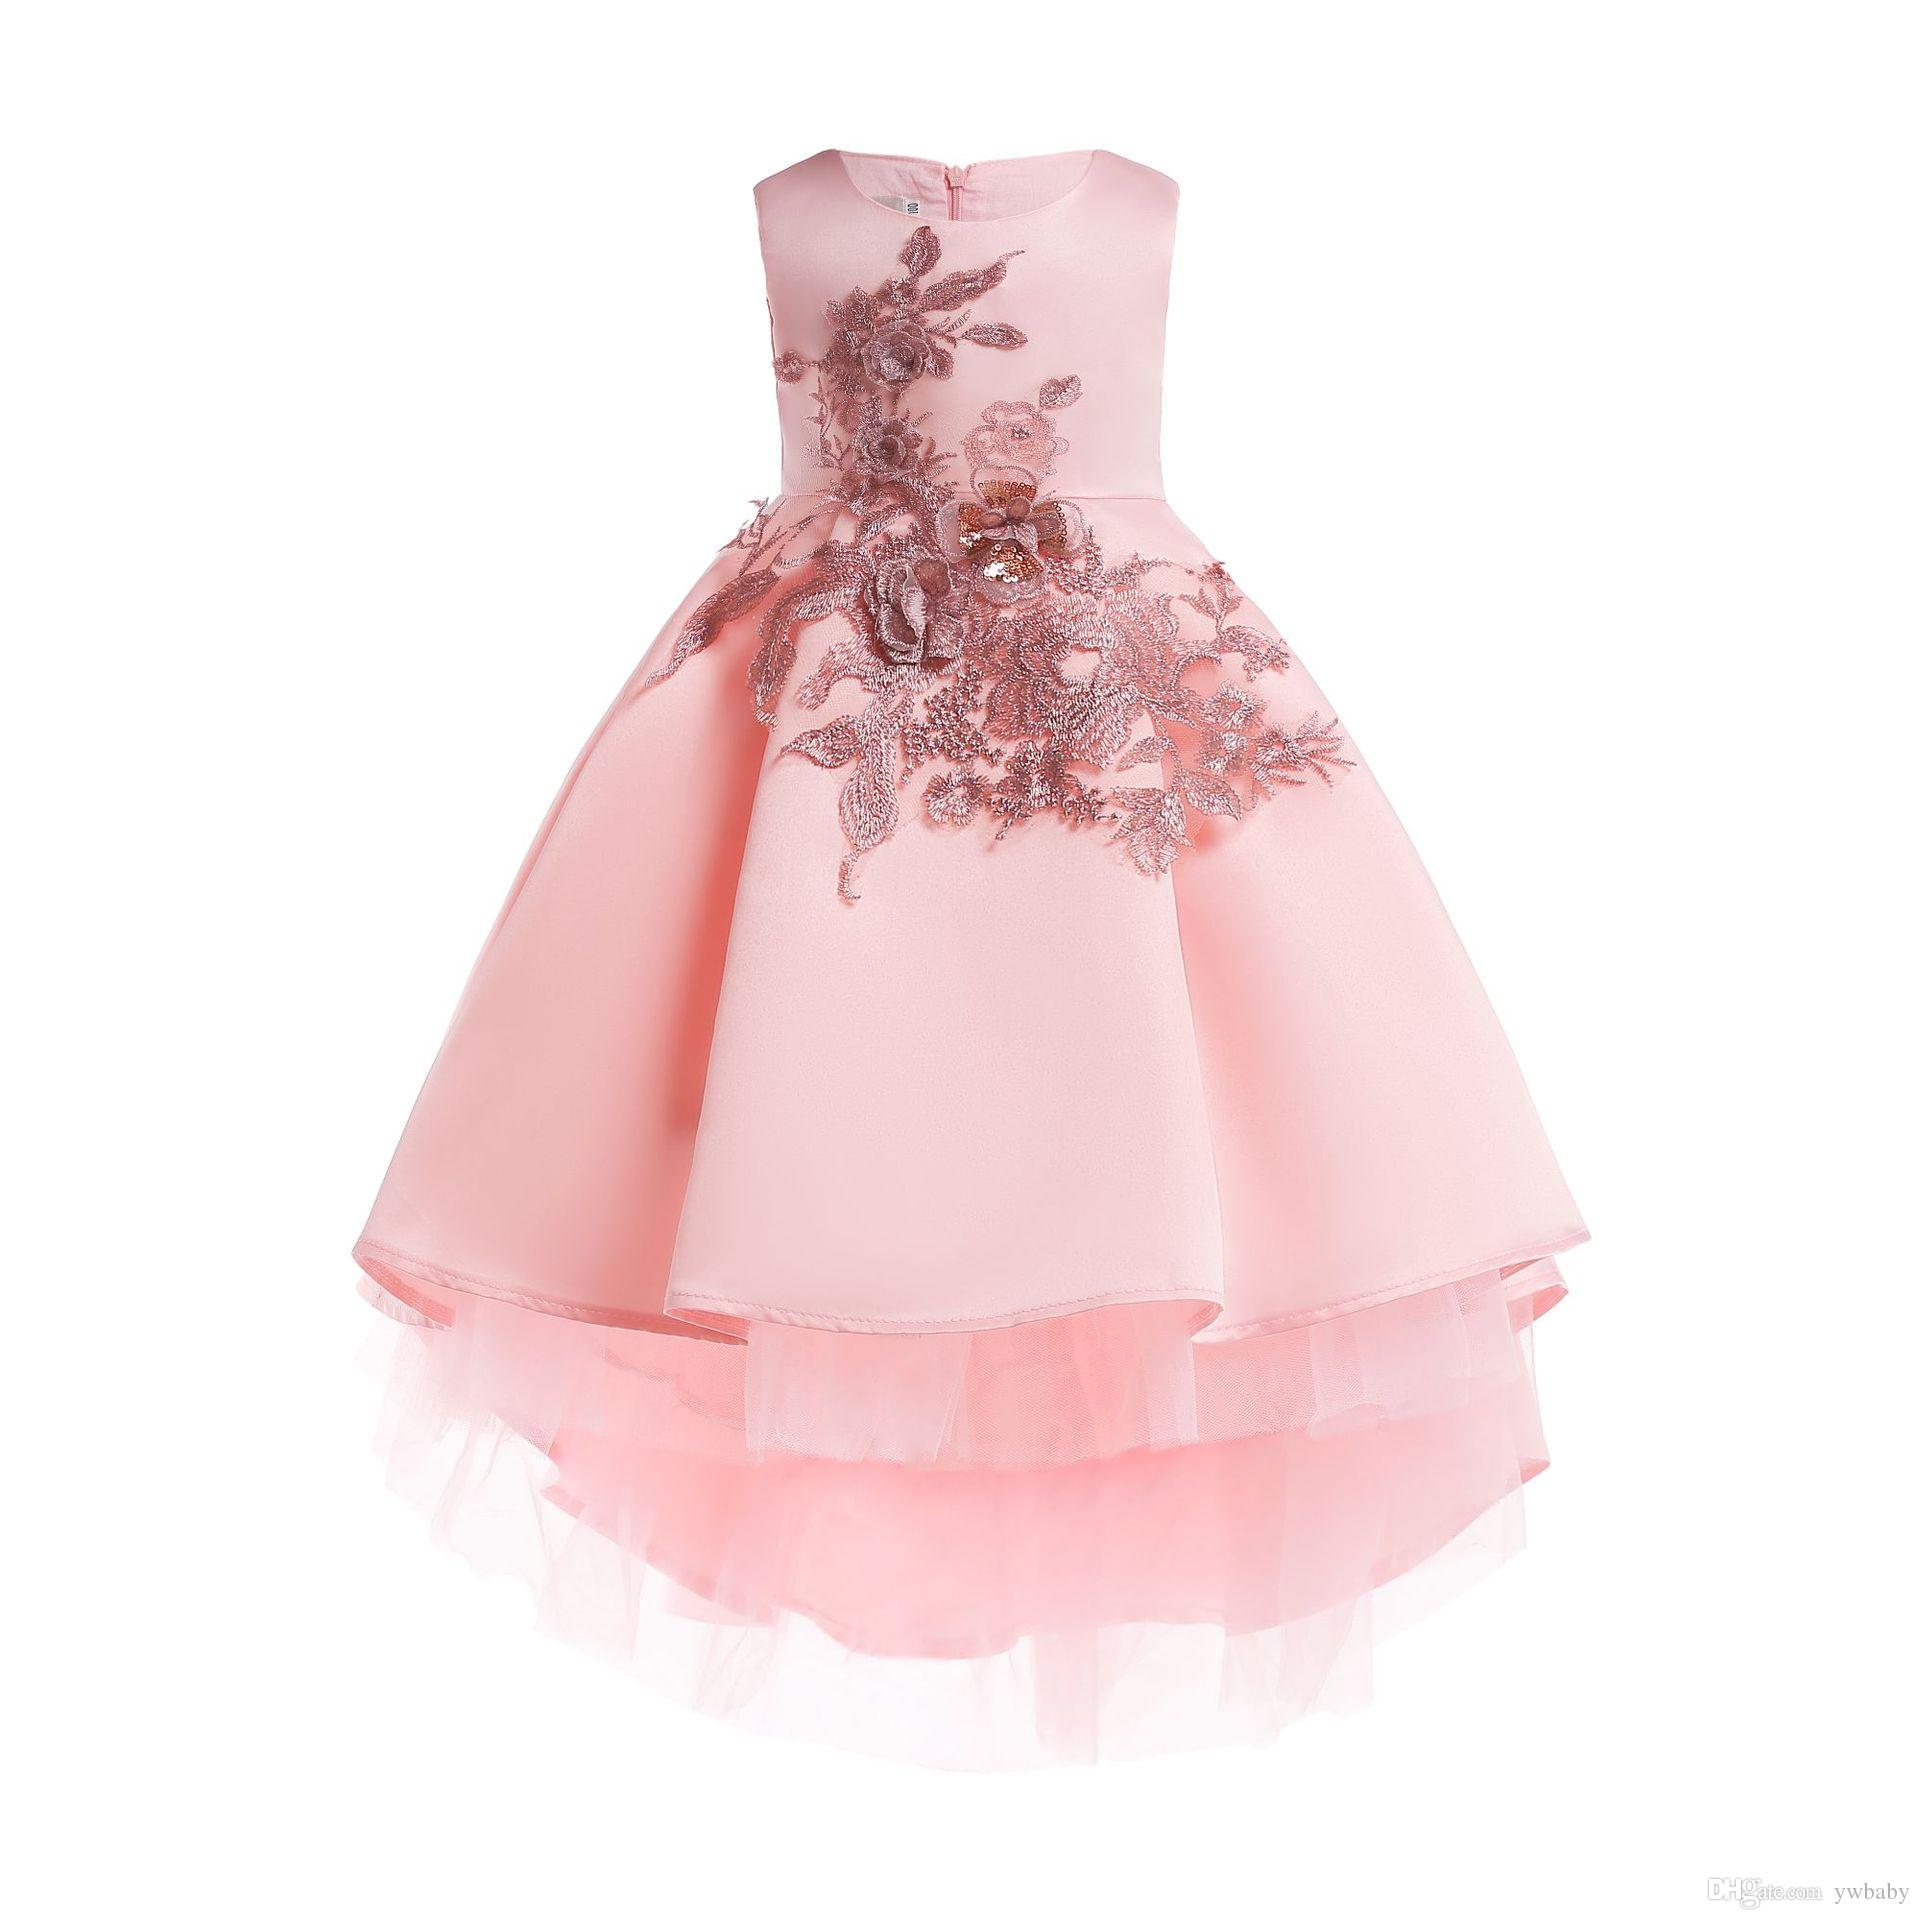 1a6e2e18f3f8 2019 Girls Lace TUTU Wedding Party Dresses Kids Clothing Princess ...